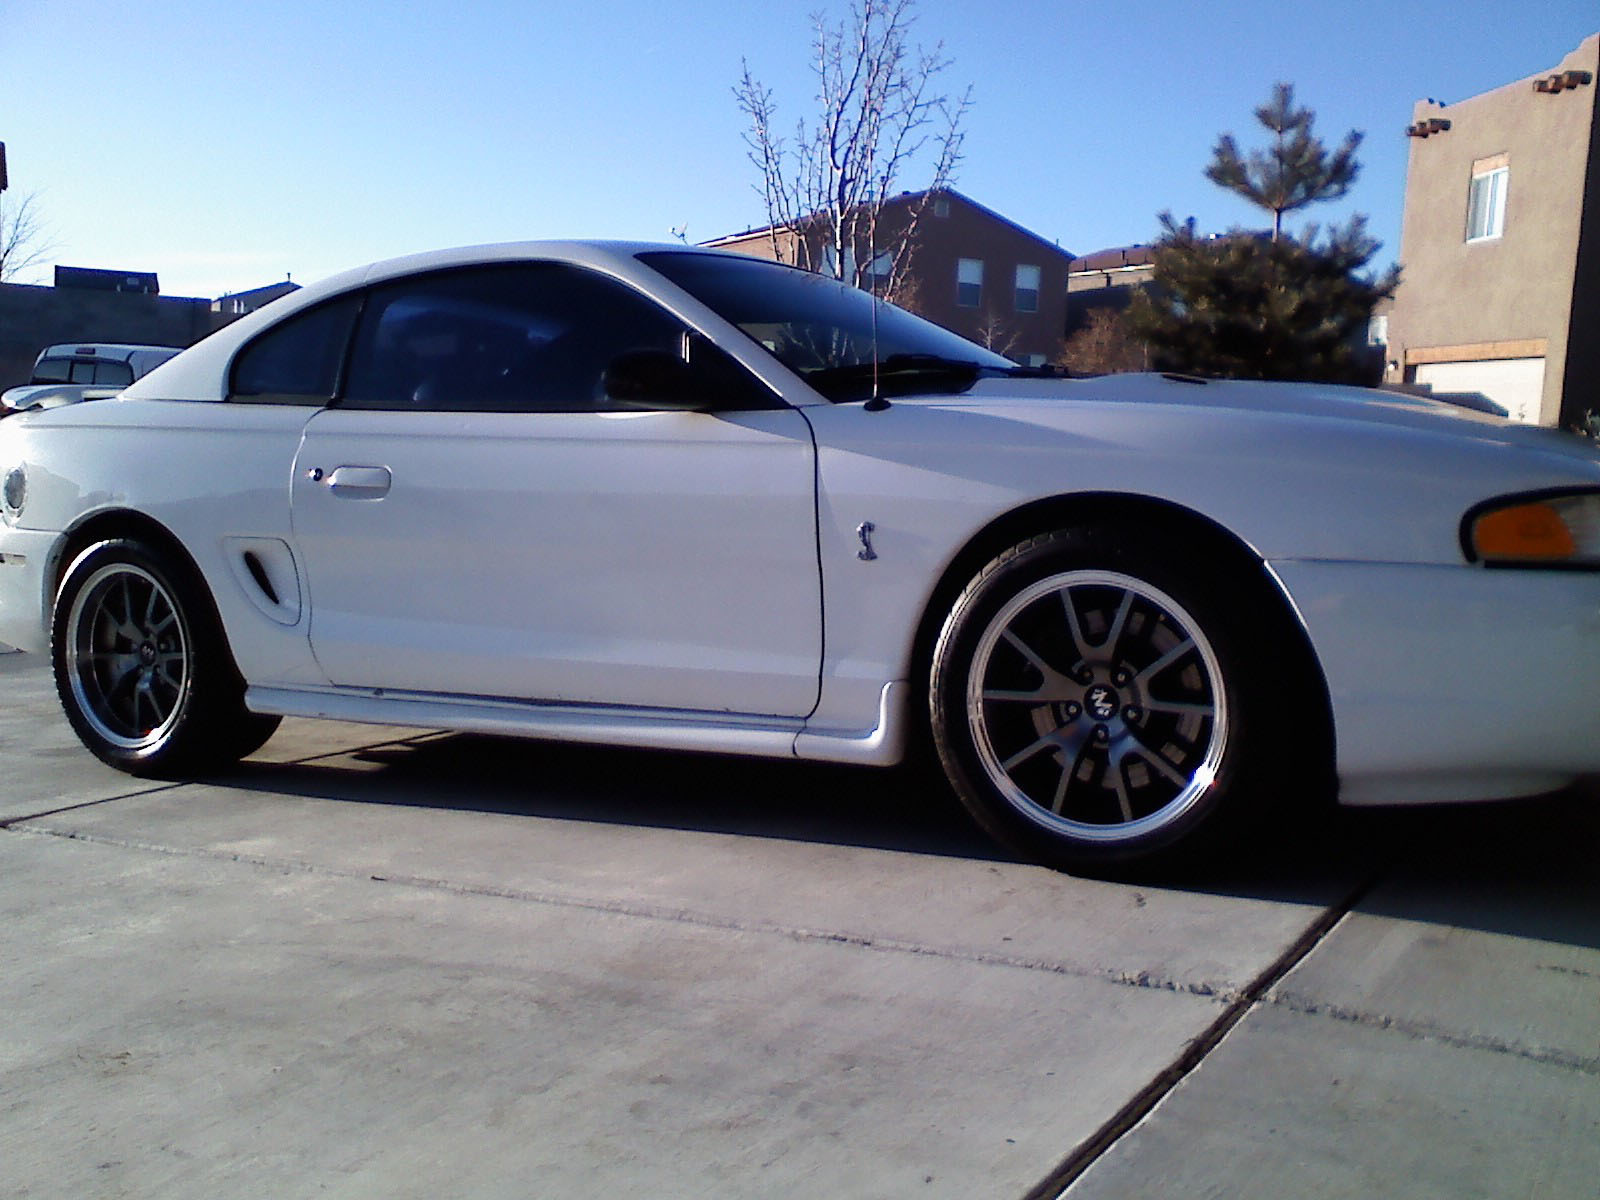 1997 ford svt mustang cobra for sale tucson arizona. Black Bedroom Furniture Sets. Home Design Ideas